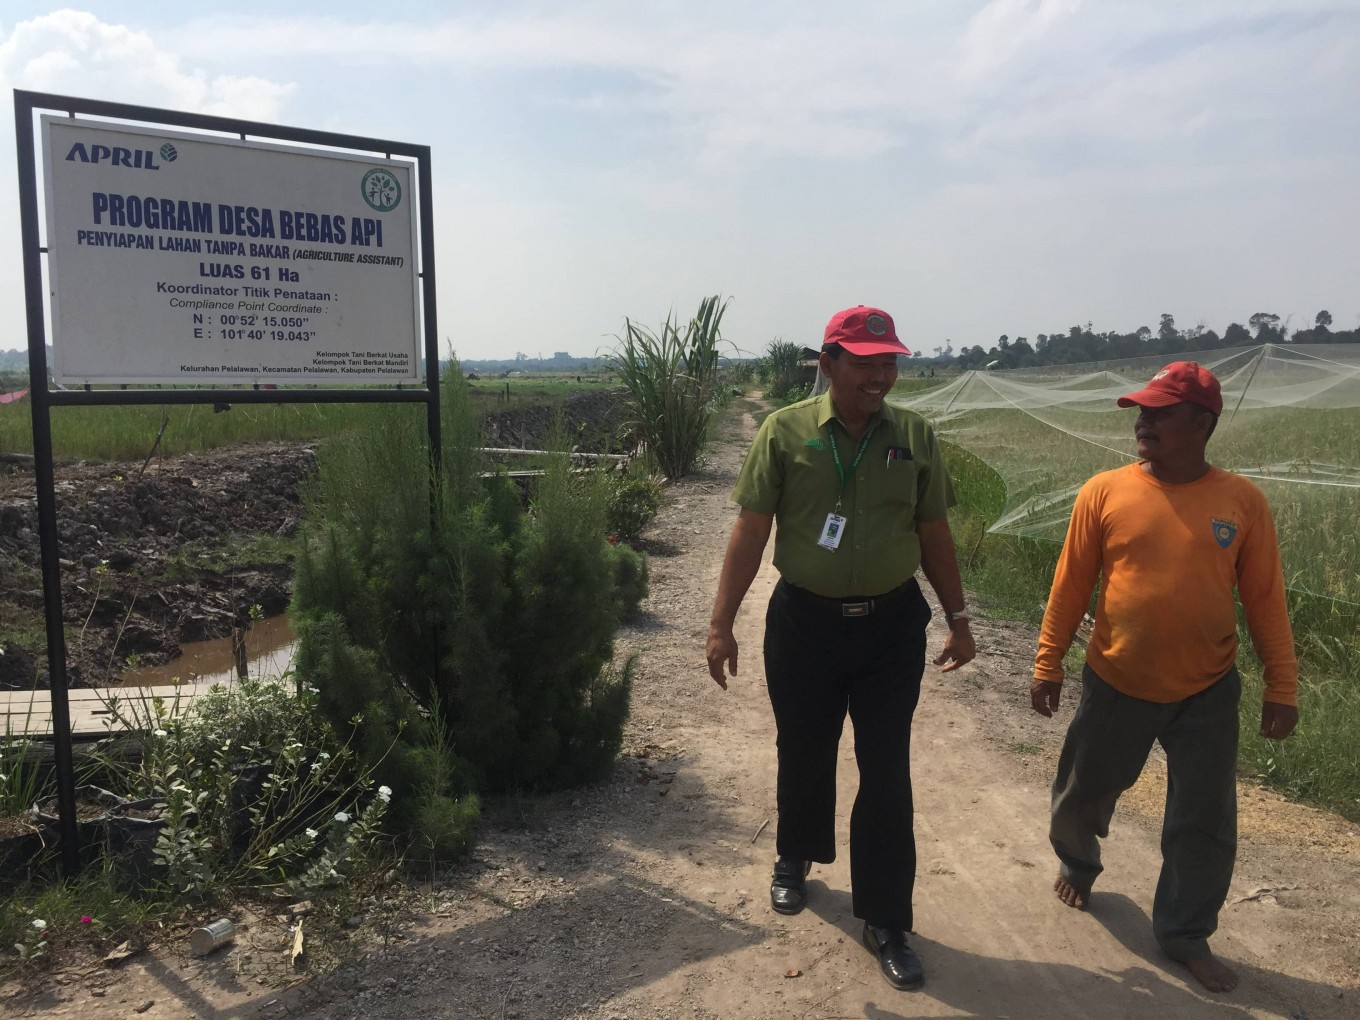 APRIL advocates multi-stakeholder approach to address fire prevention in Indonesia